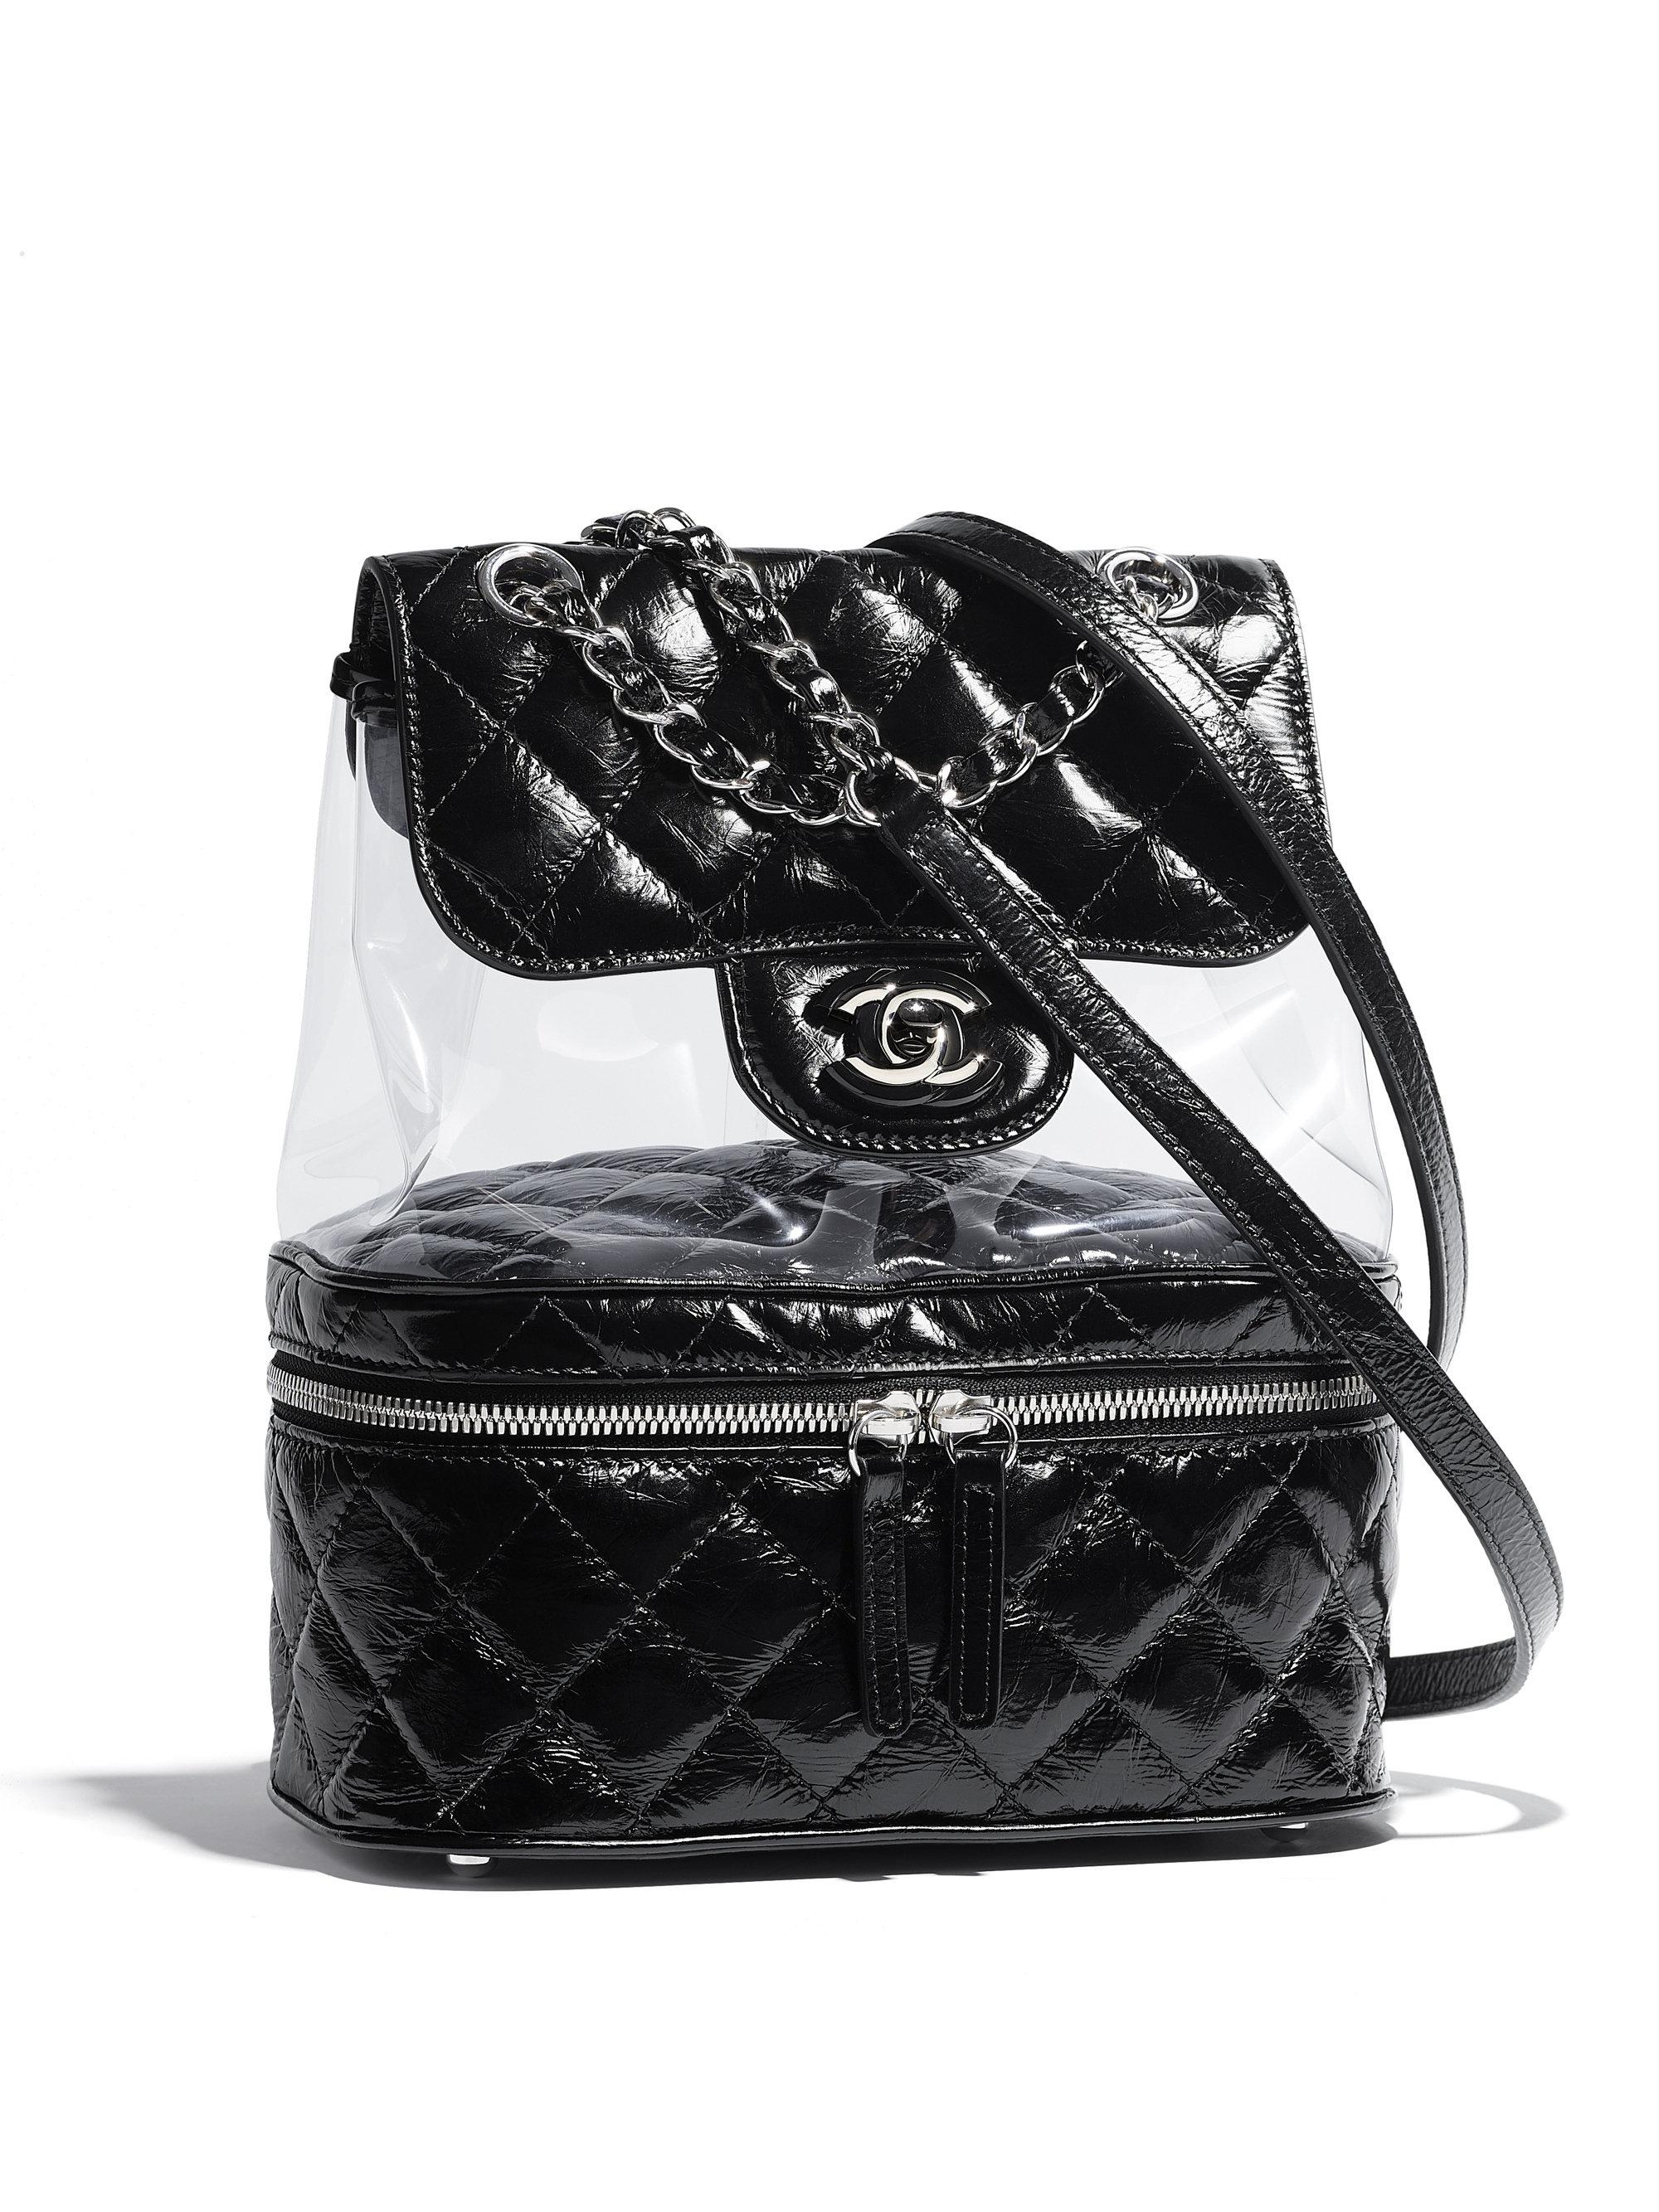 29f7fdce0bca35 Chanel Backpack in Black - Lyst